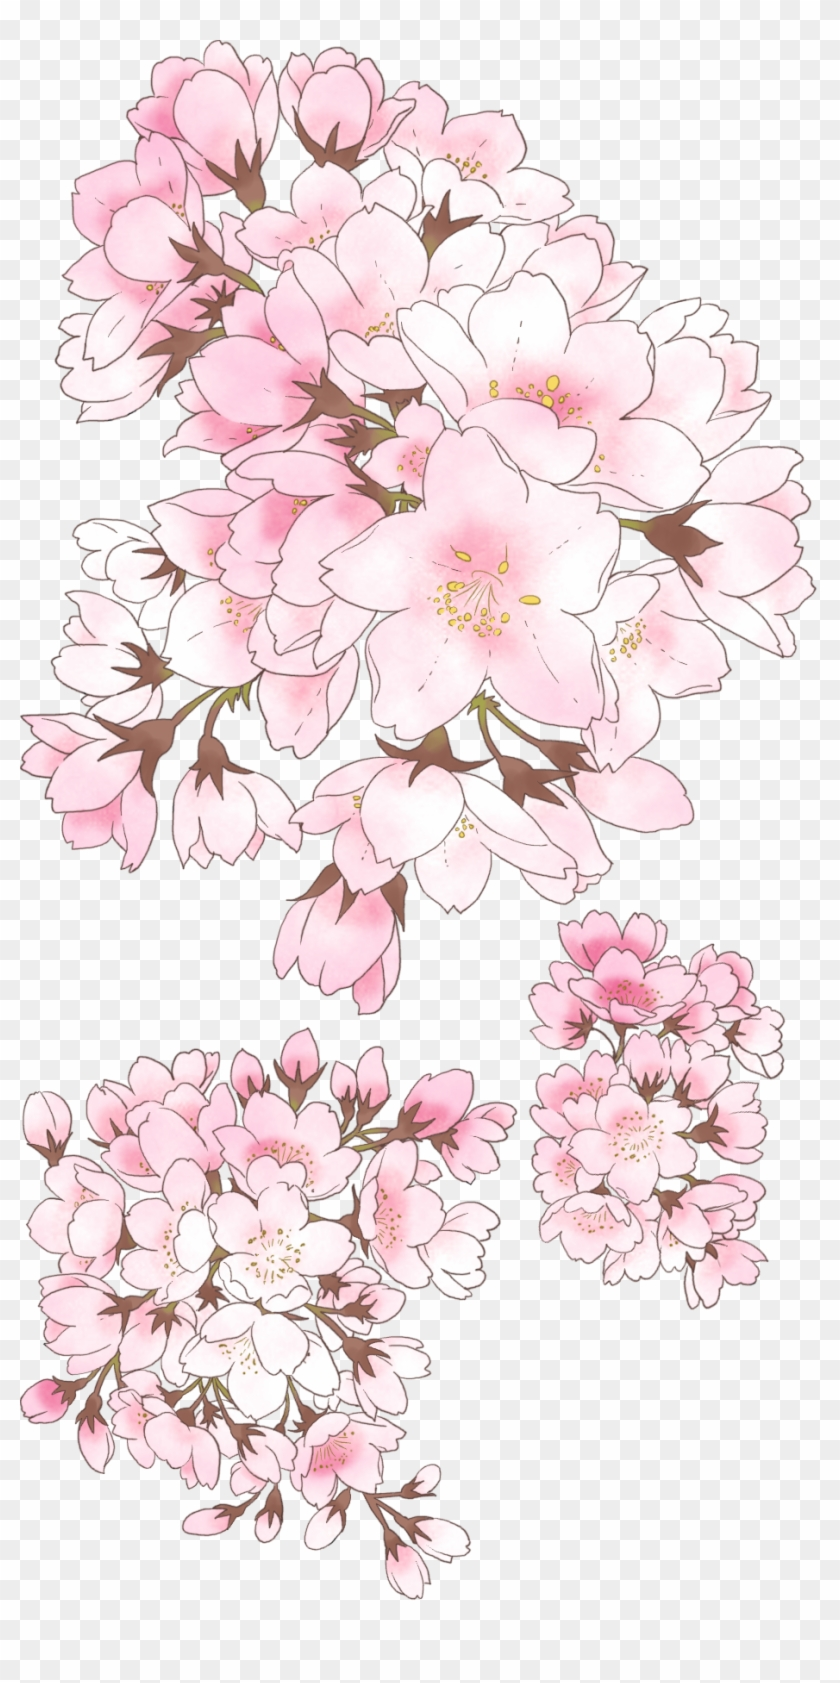 09 Anime Cherry Blossom, Tree Illustration, Botanical - Anime Cherry Blossom Drawing Clipart #135999